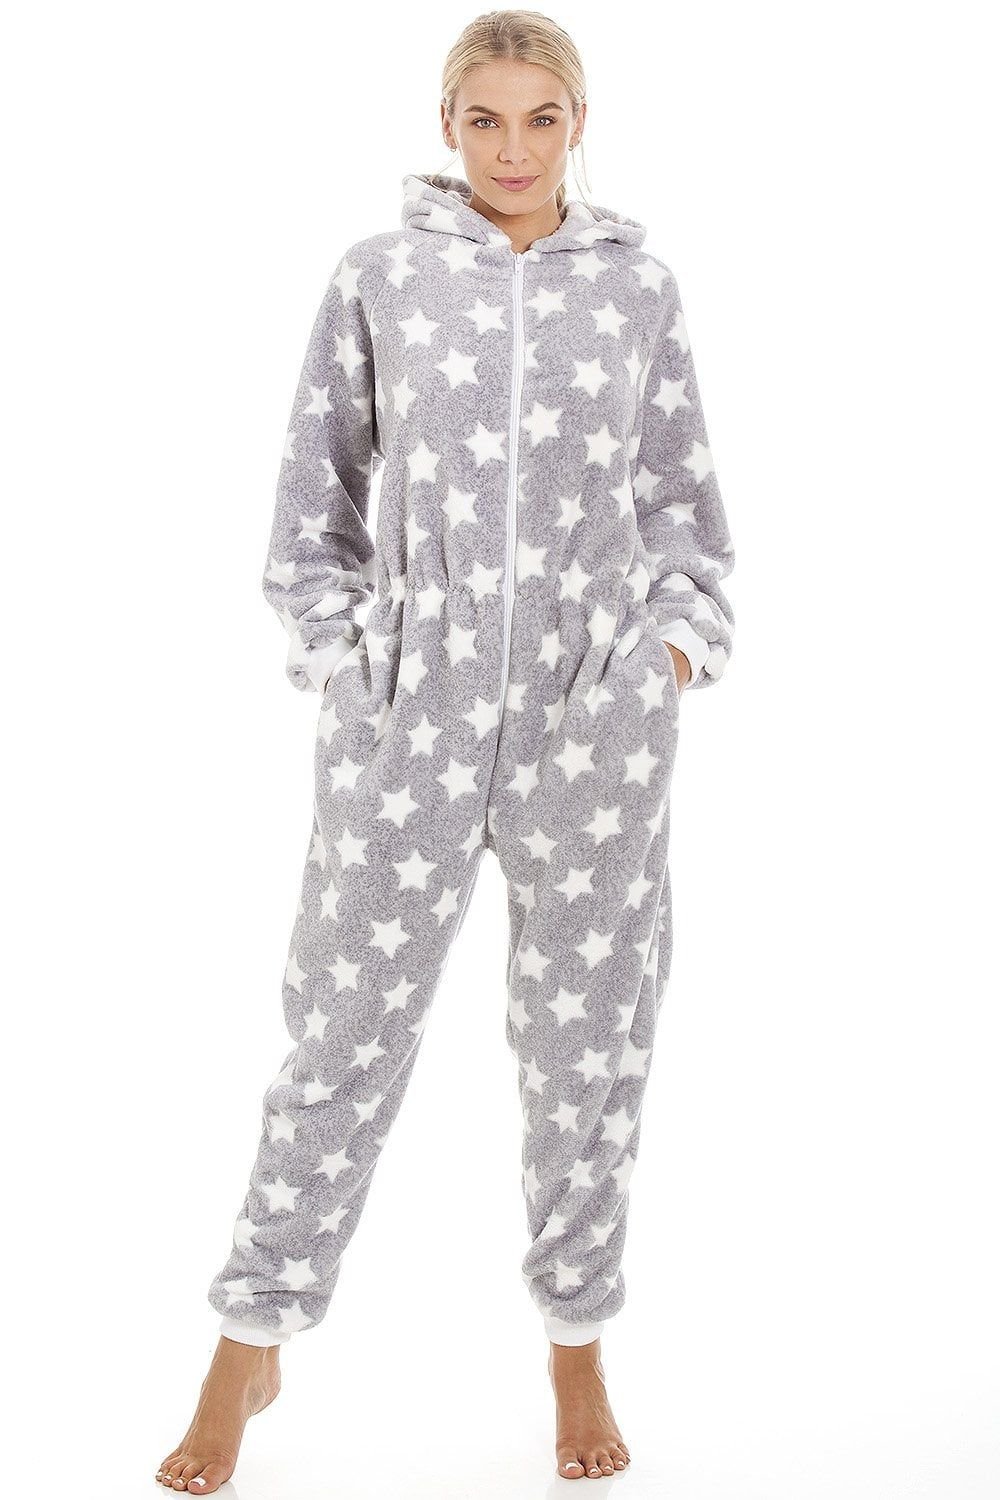 Womens Soft Fleece White Star Print Light Grey Onesie  Star print